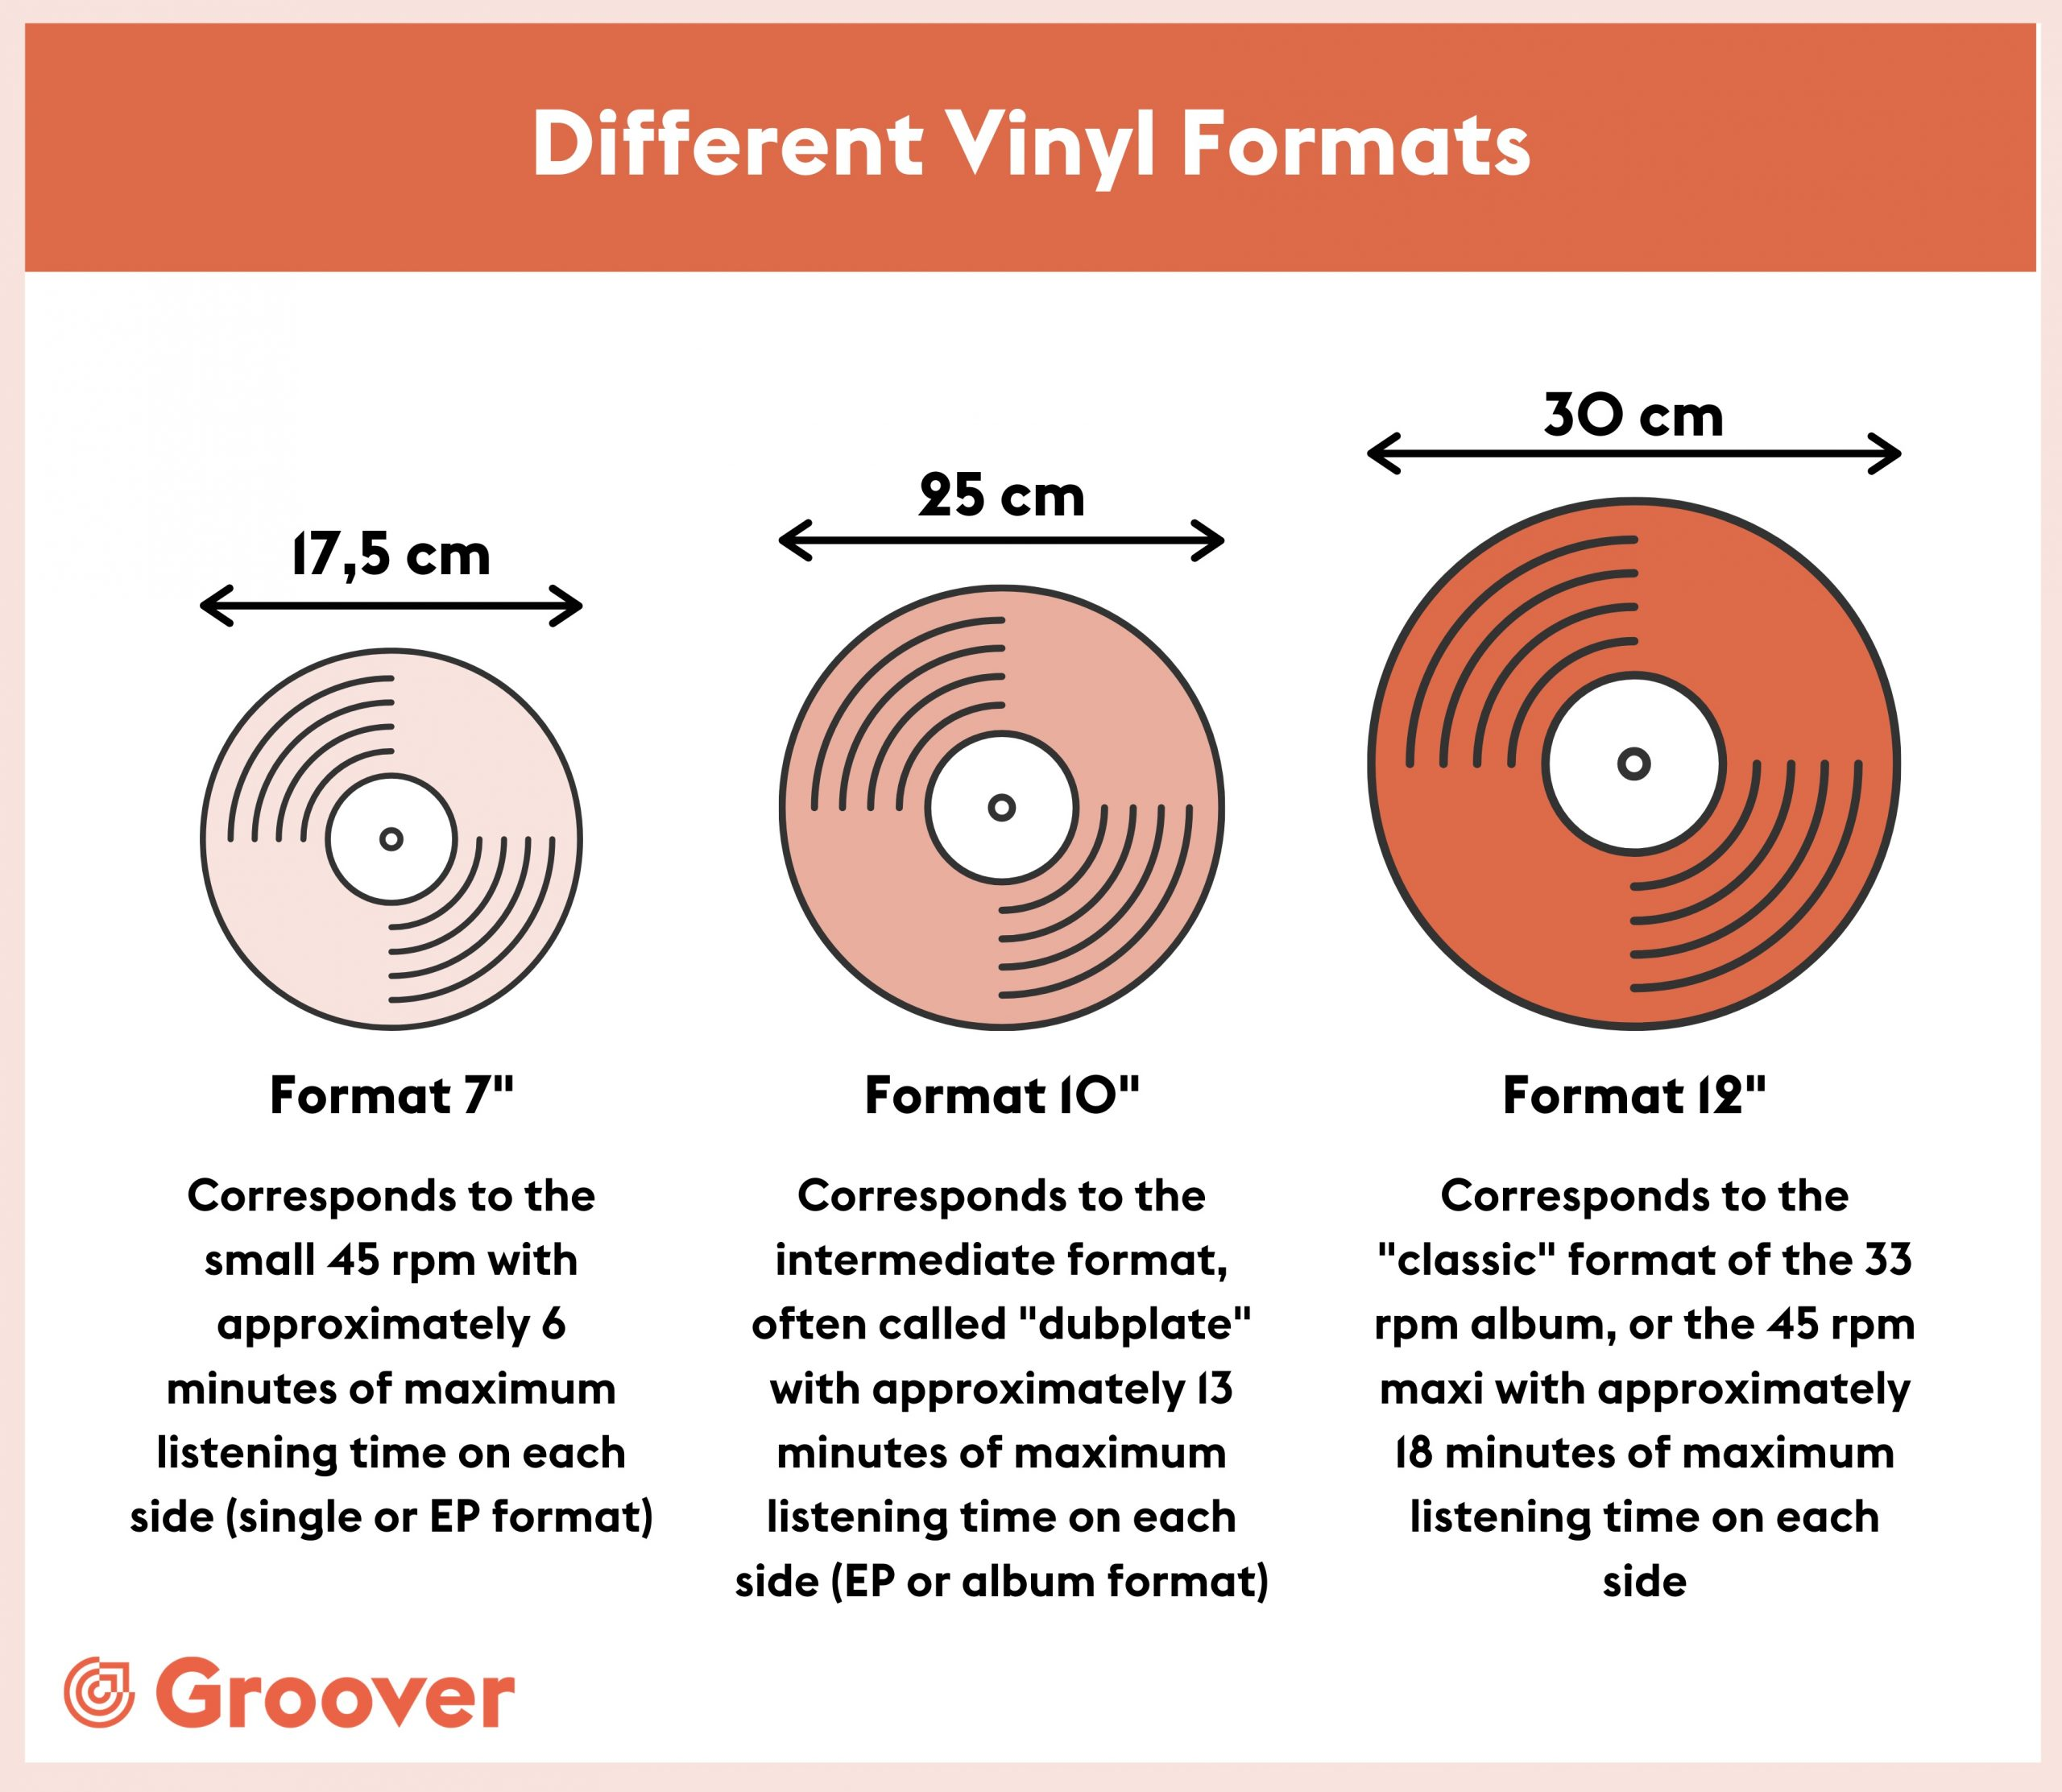 5 essential tips to press your vinyl records efficiently and affordably